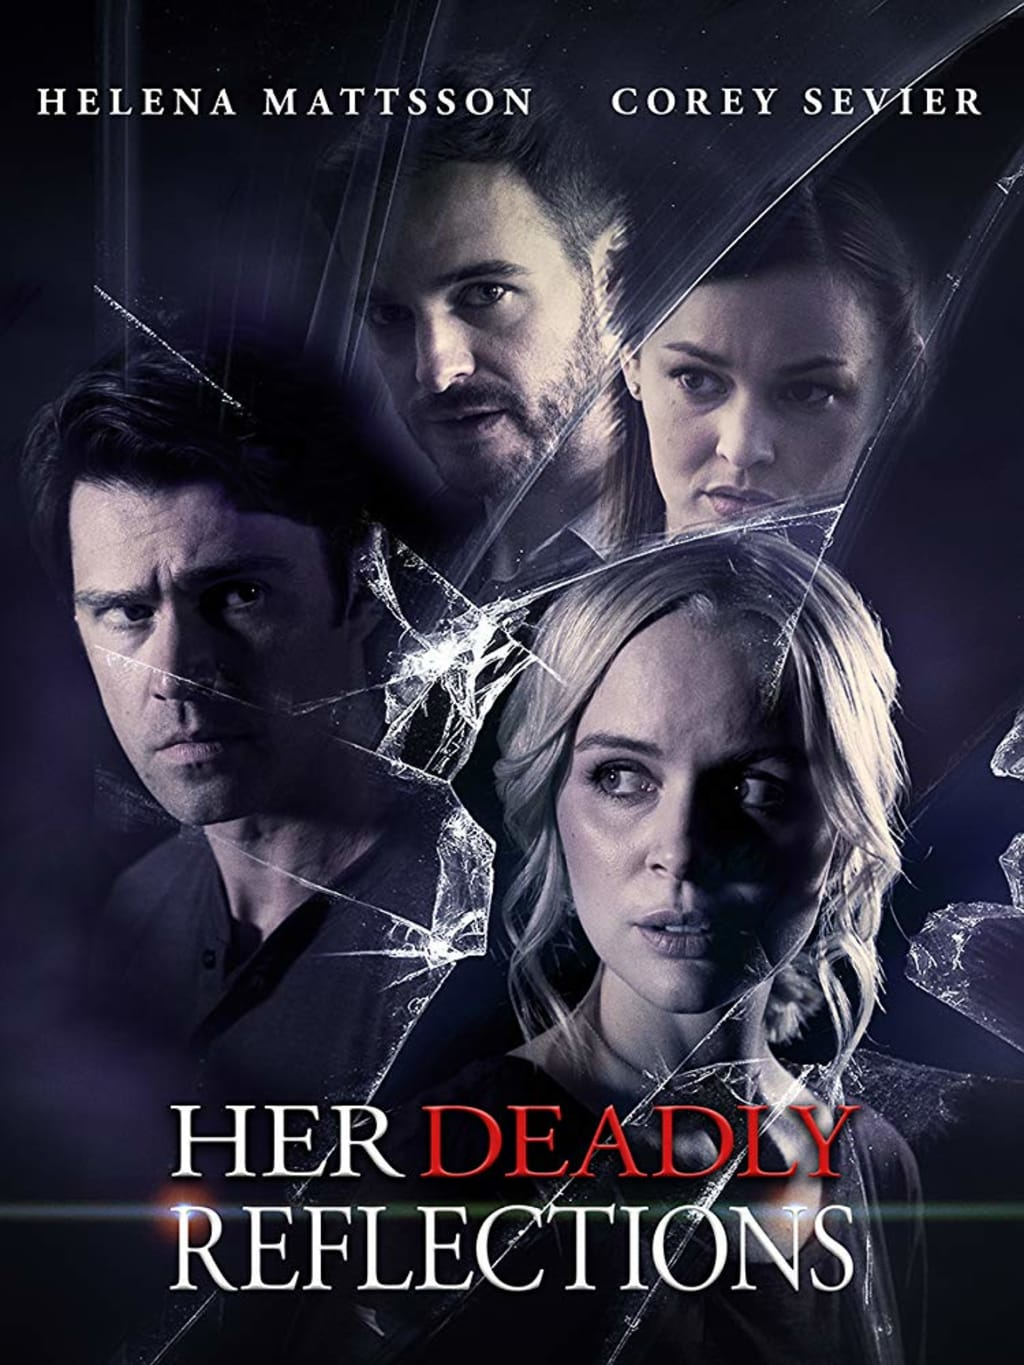 Lifetime Review: 'Her Deadly Reflections'